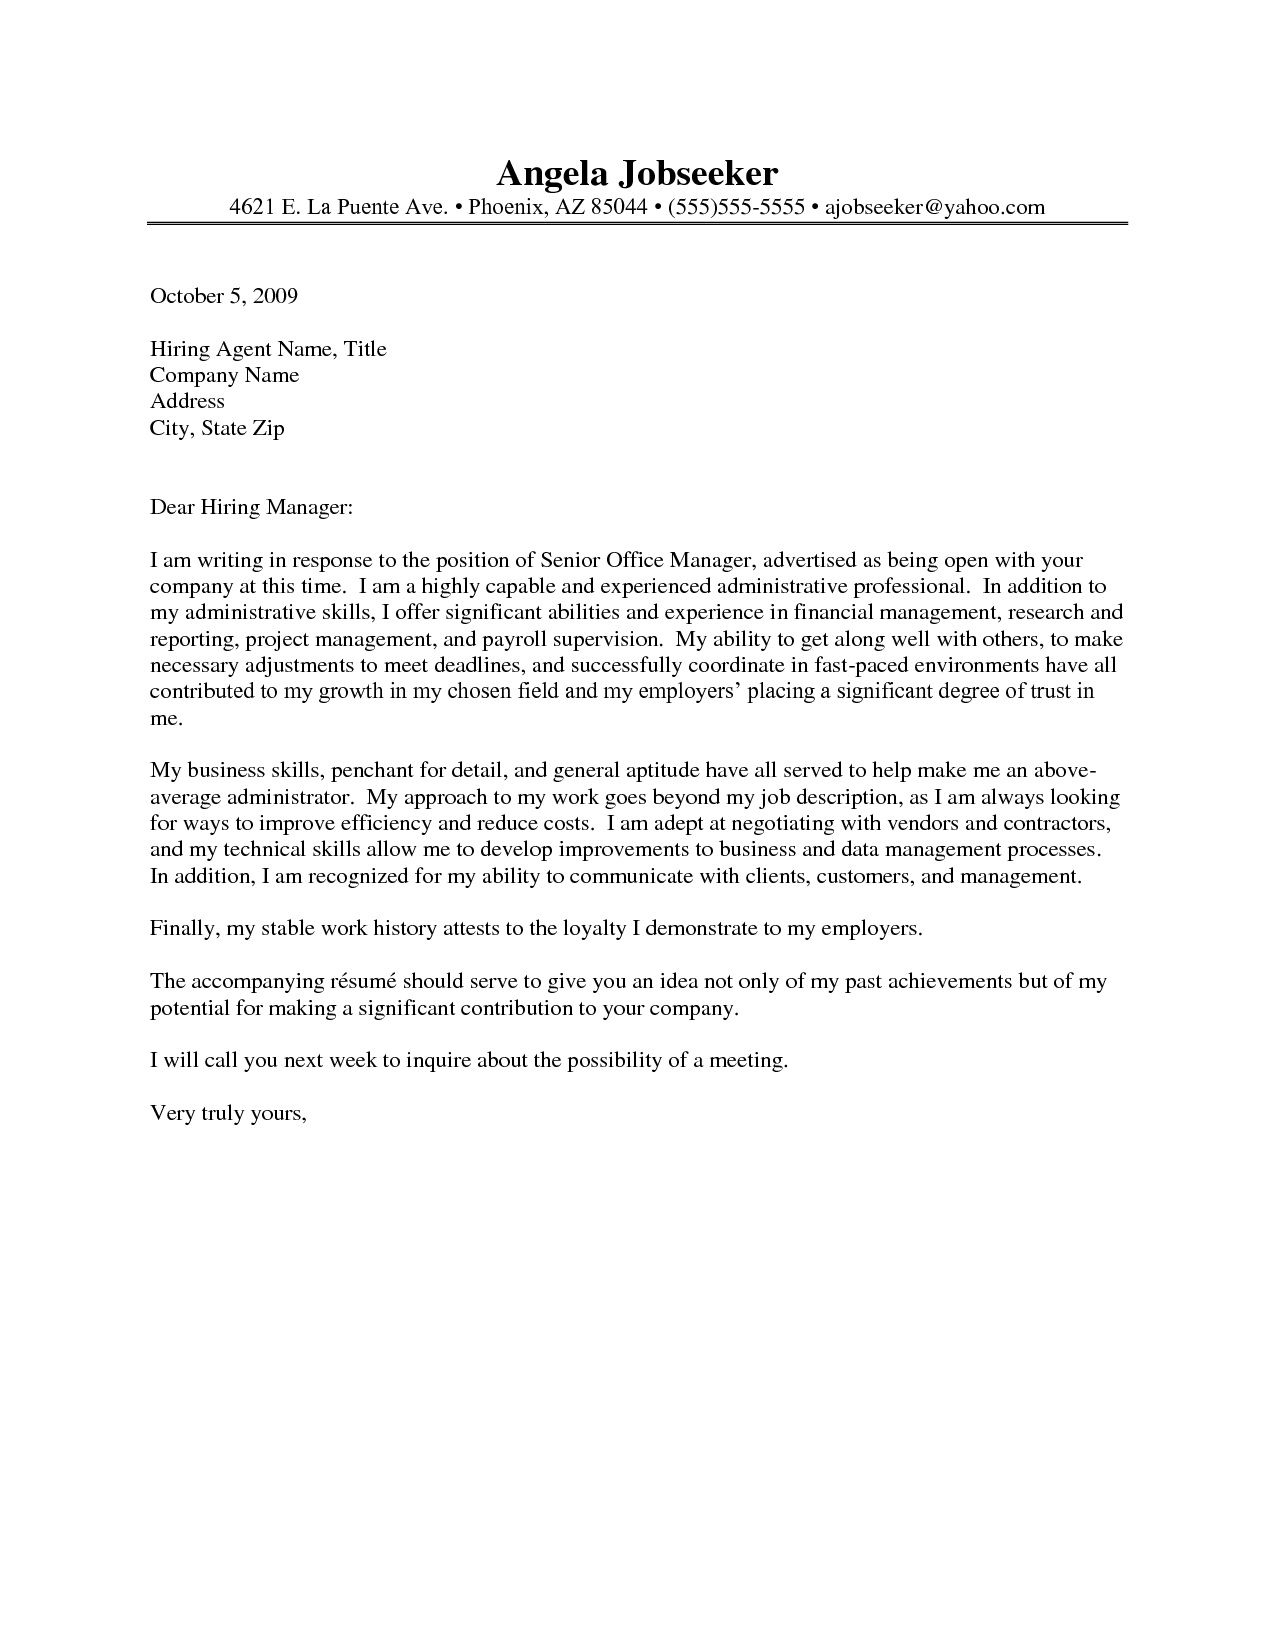 office assistant cover letter example - Administrative Assistant Cover Letter